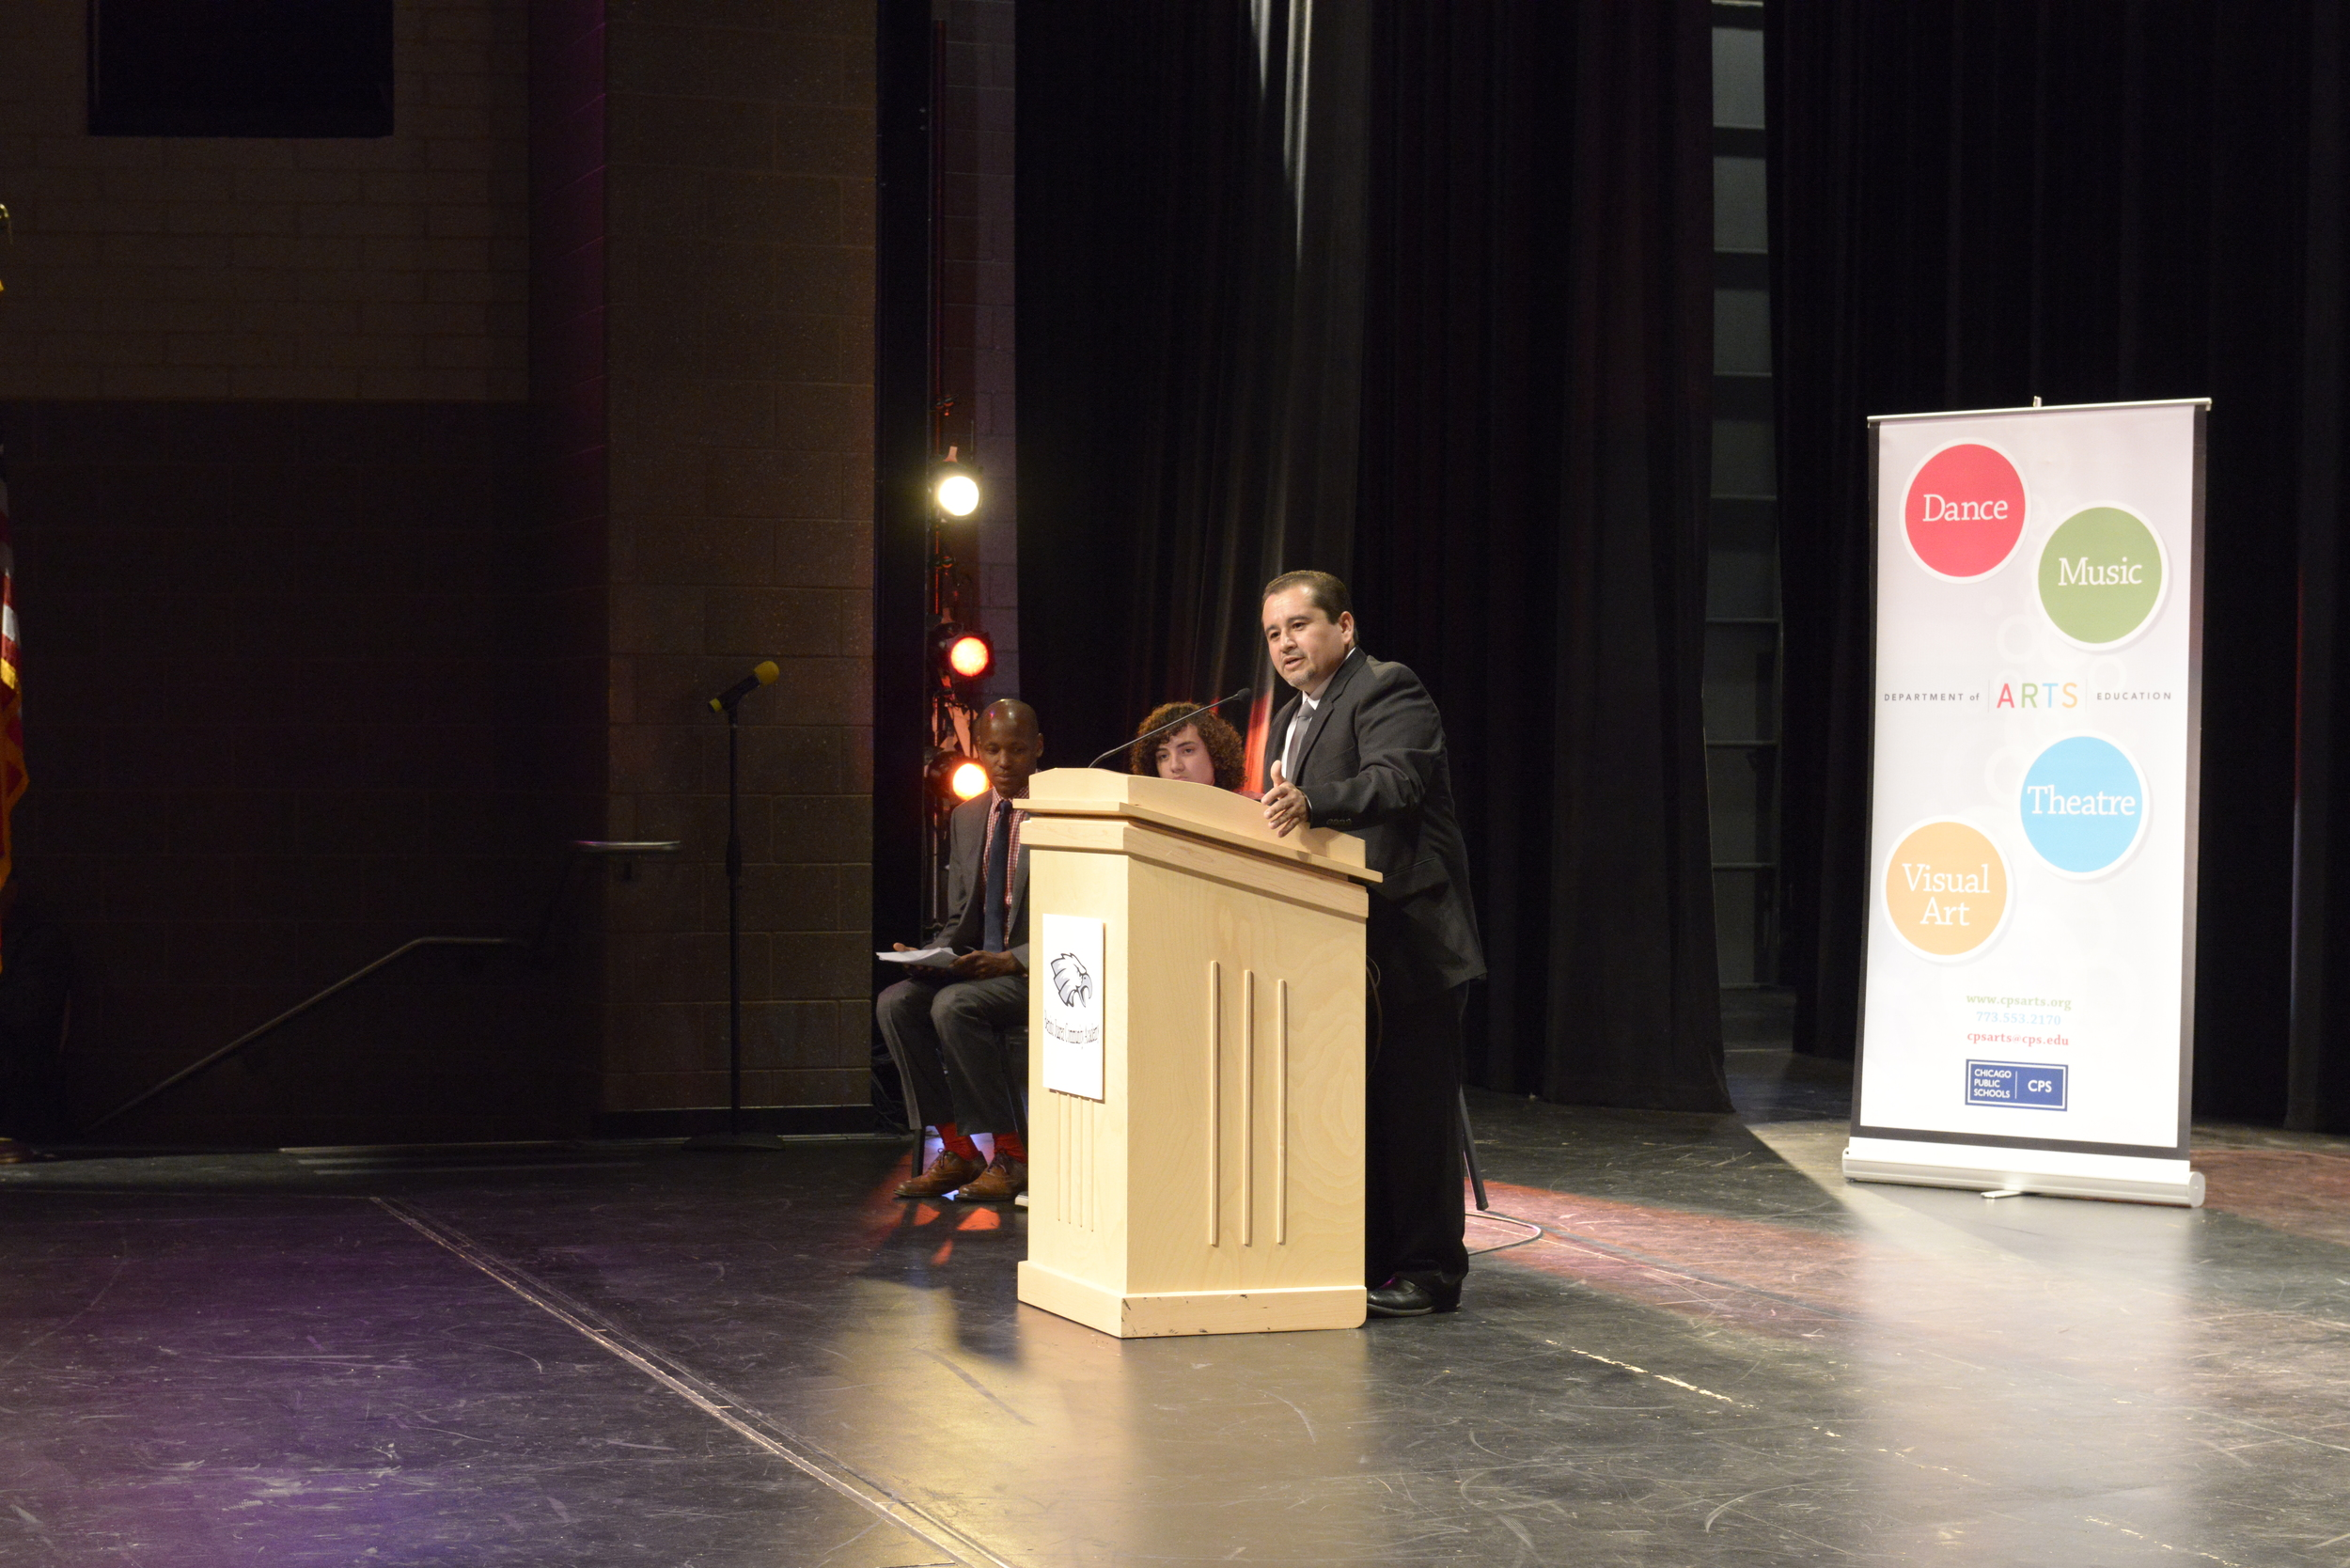 Benito Juarez Community Academy Principal  Juan Ocon welcomes guests to the launch event celebrating  Be Creative: The Campaign for Creative Schools